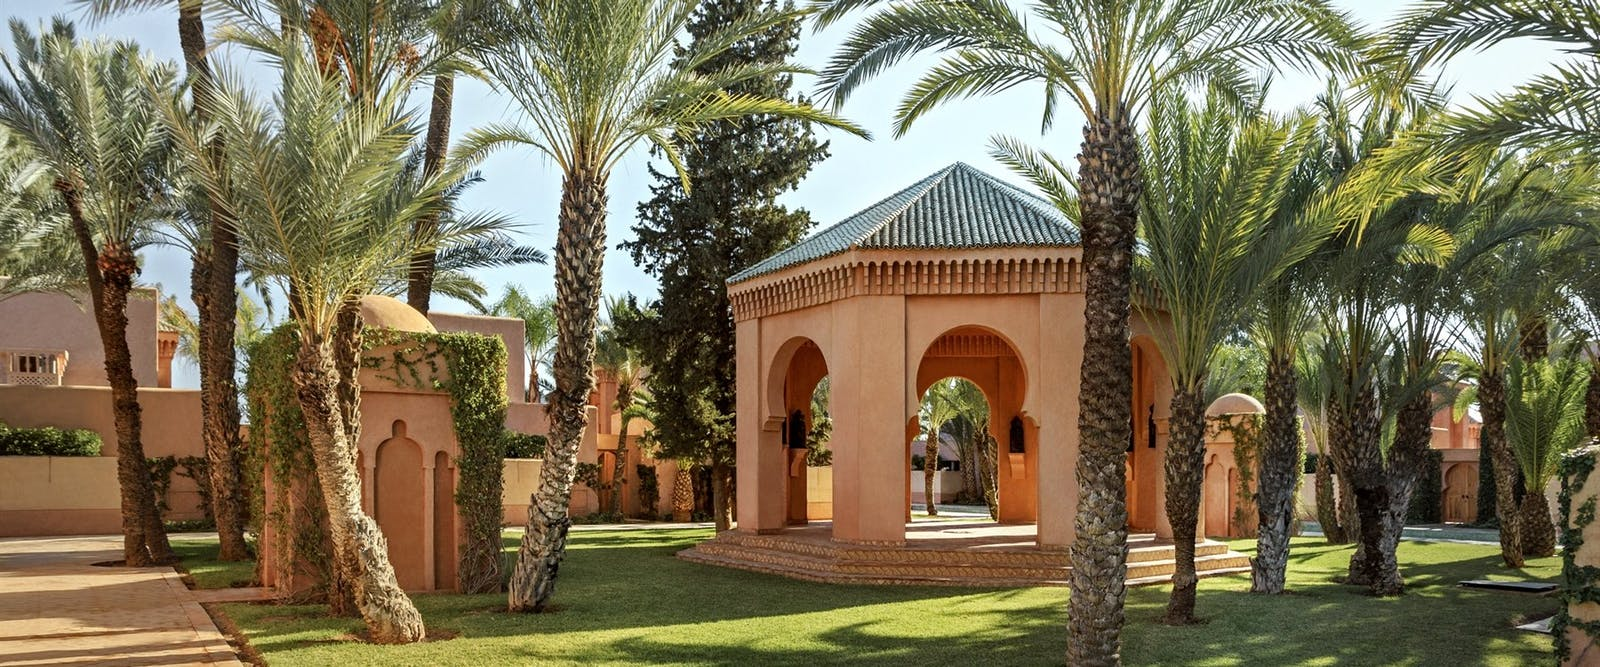 Gardens at Amanjena, Marrakech, Morocco